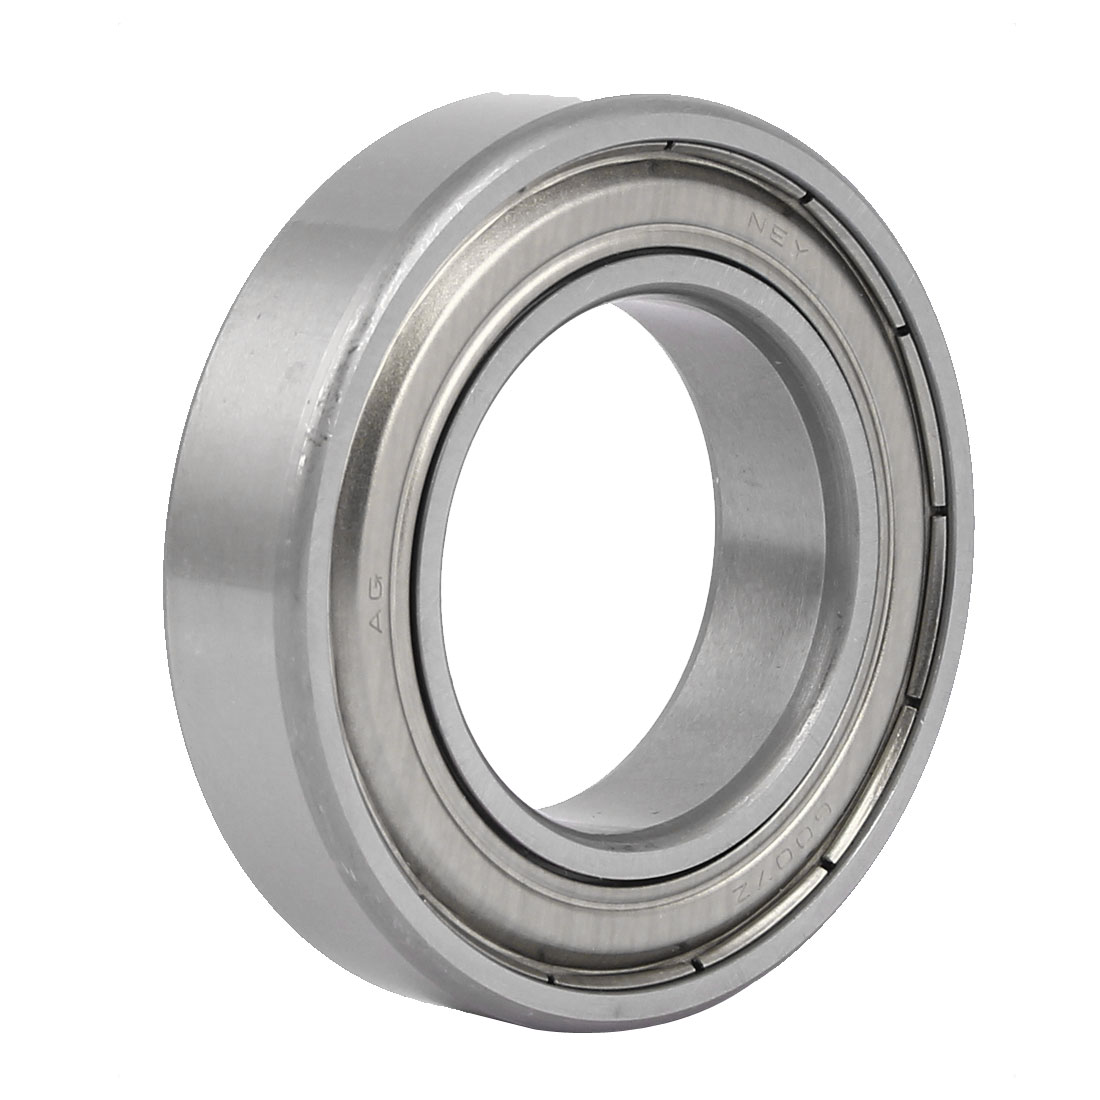 ZZ6009 45mm Inside Dia 75mm Outside Dia Double Sealed Deep Groove Ball Bearing